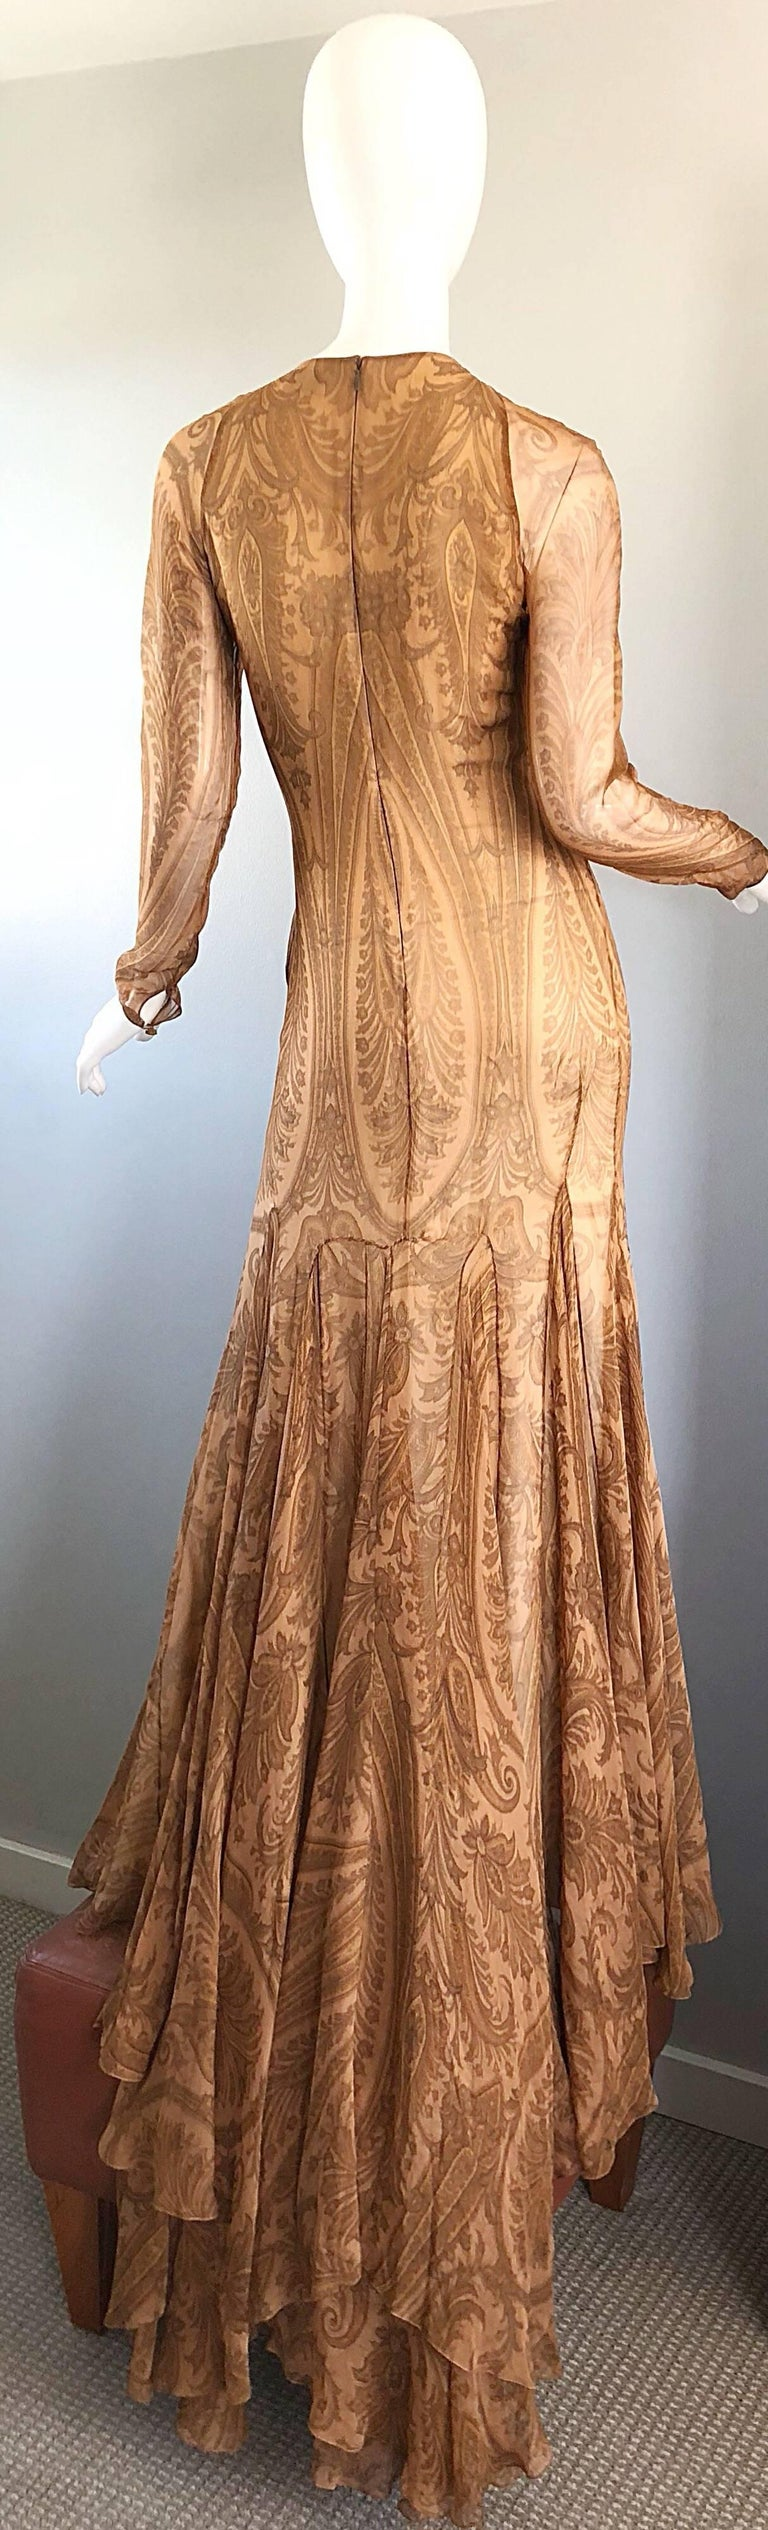 Sensational 1990s Bill Blass Couture Nude Silk Chiffon Paisley Vintage 90s Gown  For Sale 10